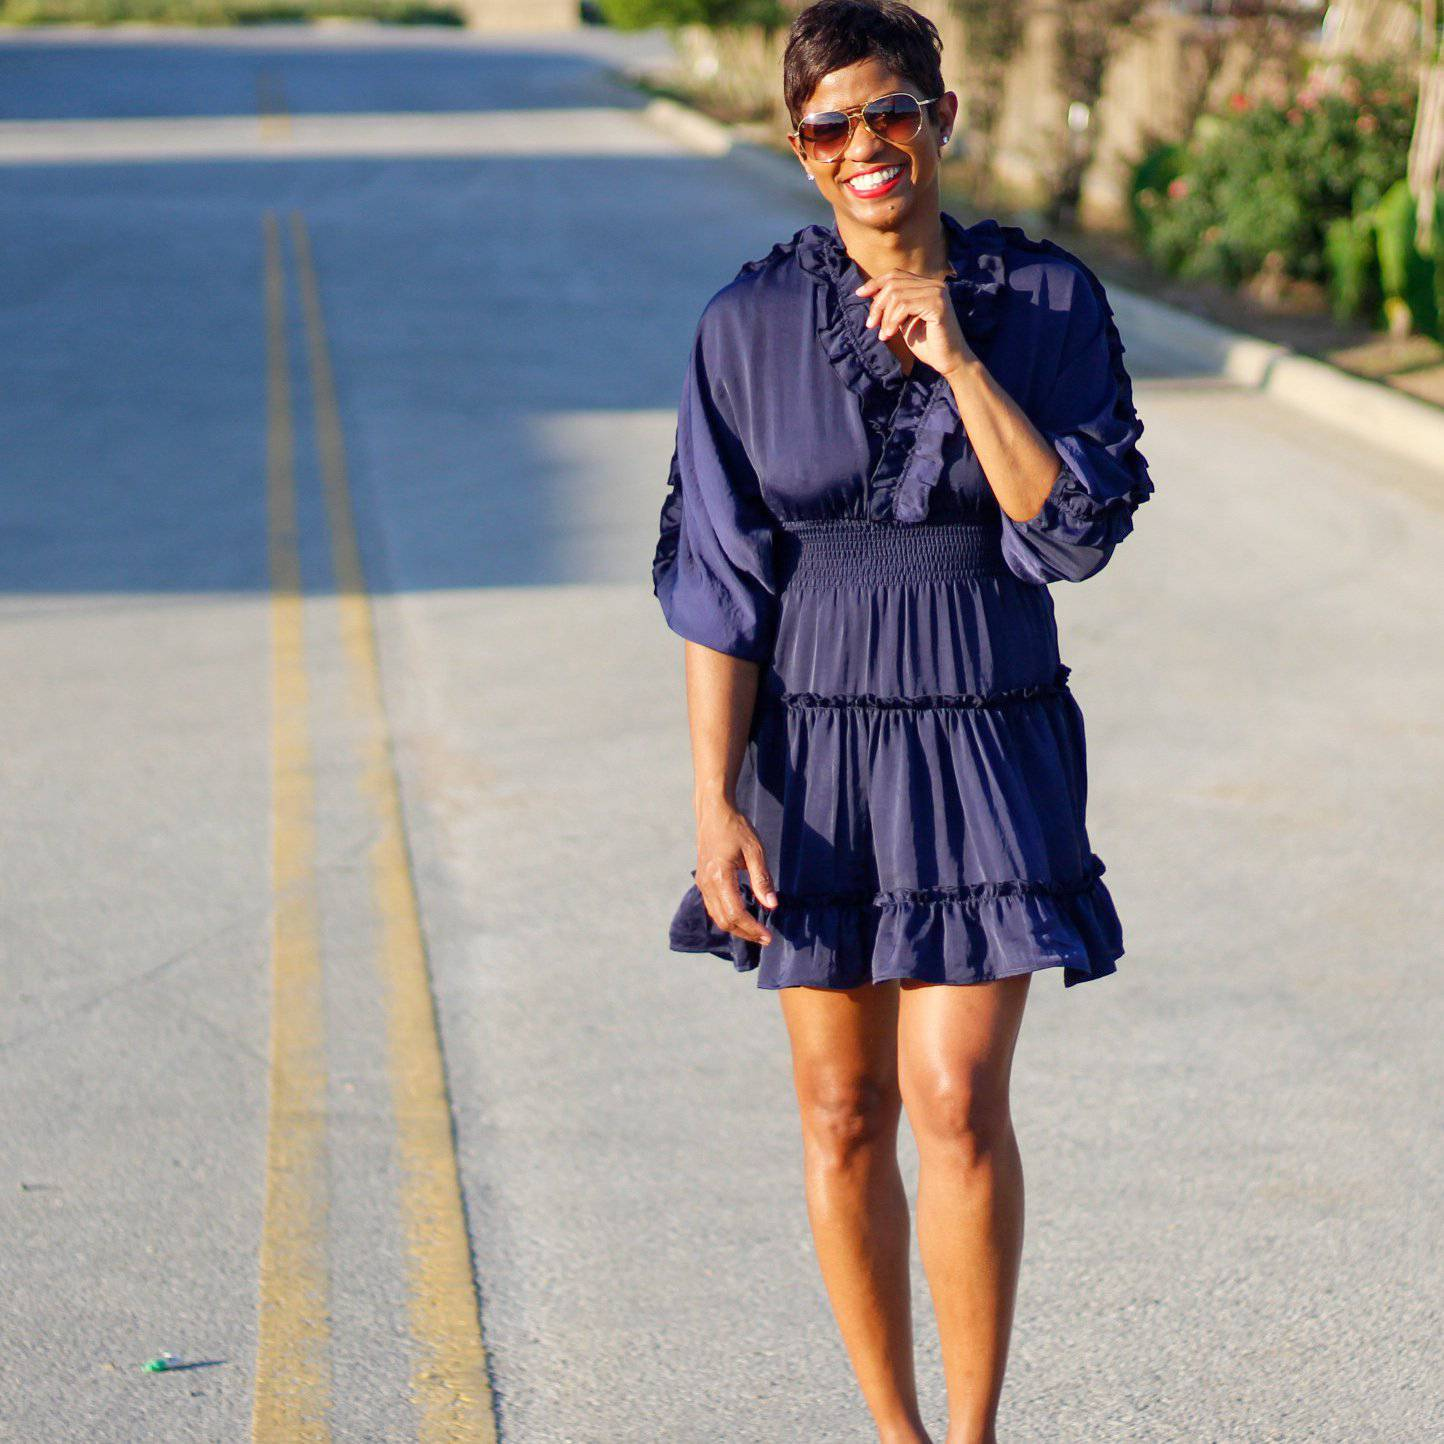 Blue Vibe V Neck Ruffle | Swing Mini Dress - My Kava Boutique